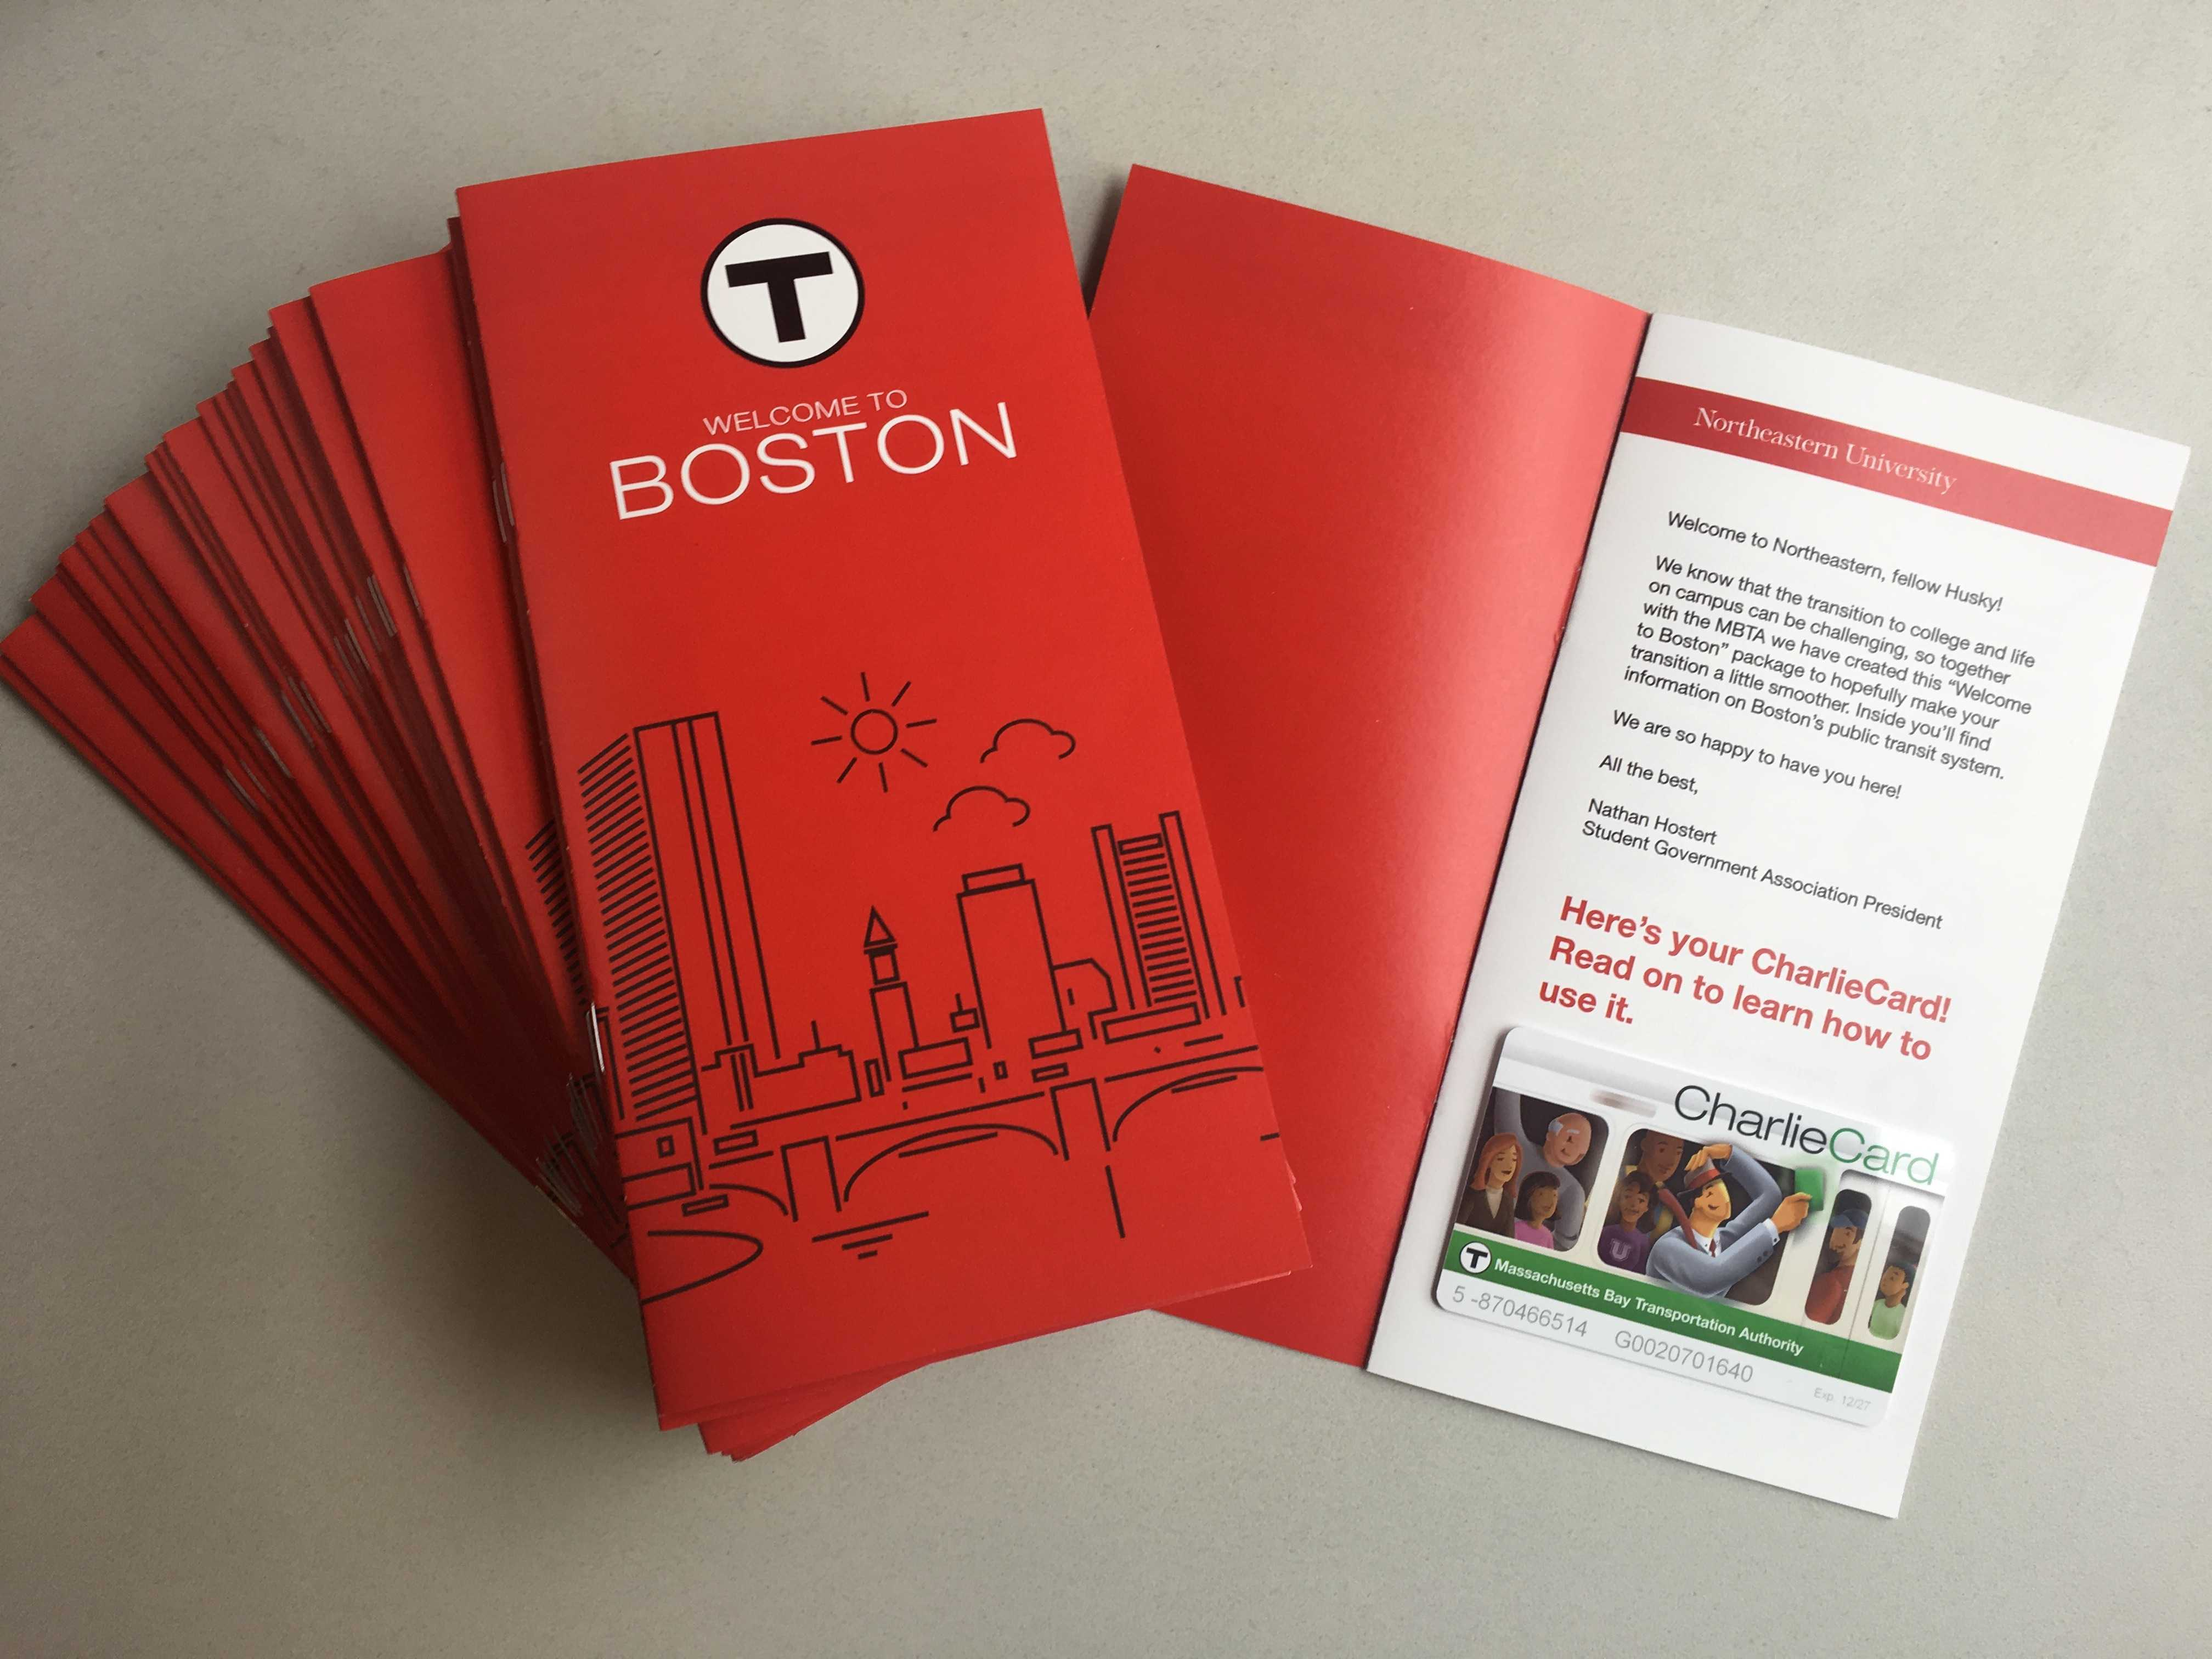 SGA created Welcome to Boston packages to help familiarize new students with the city.